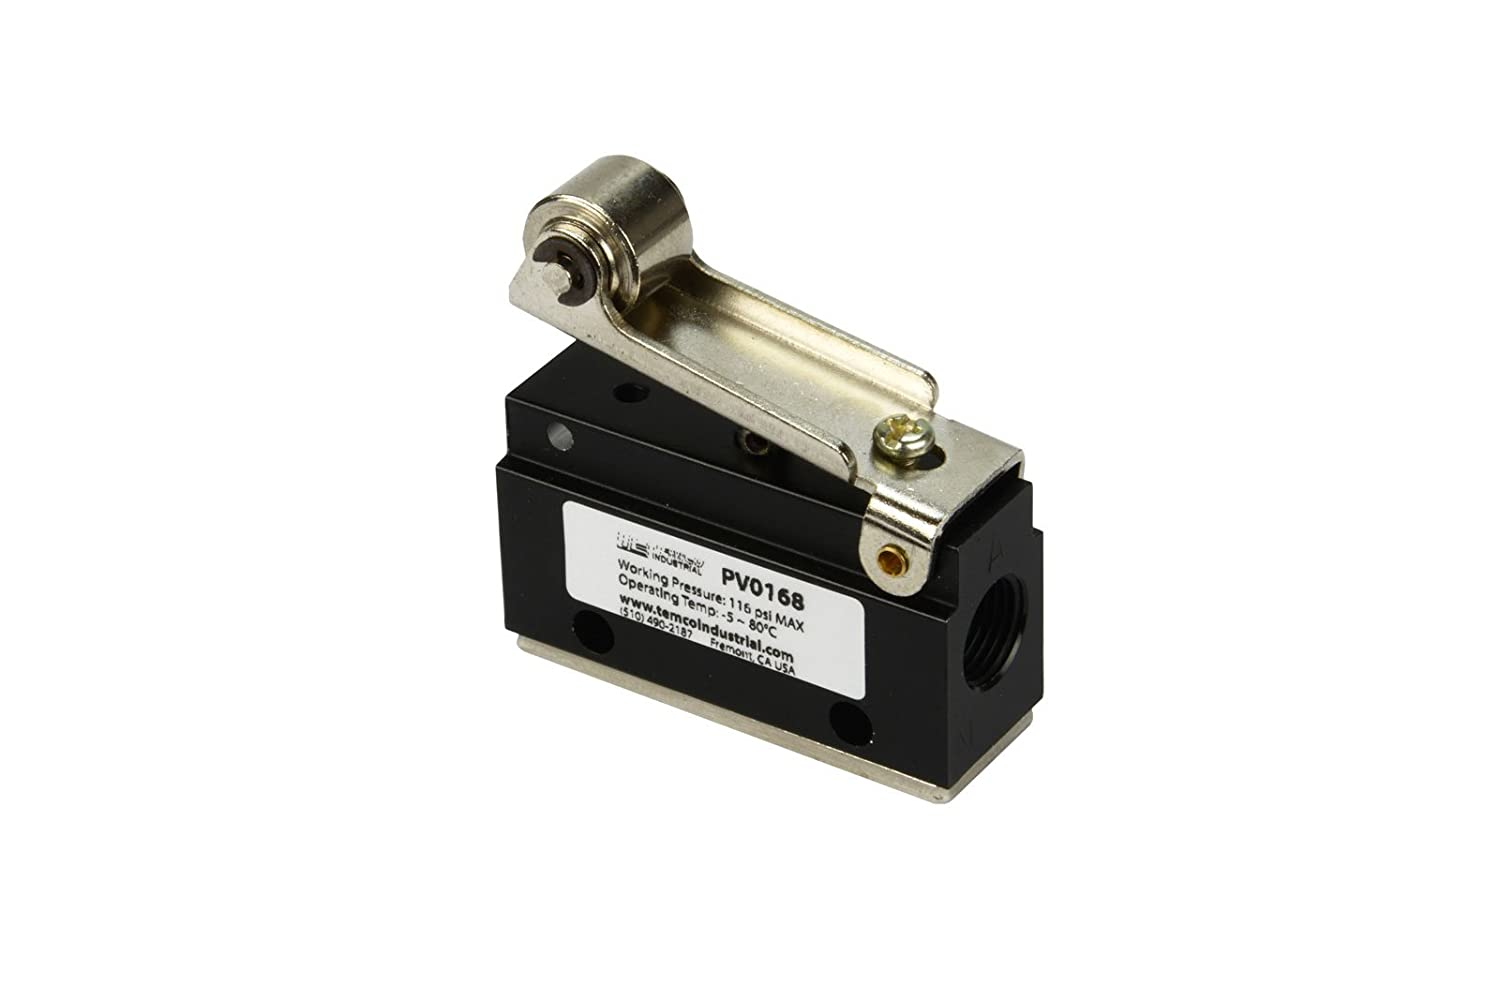 2 Qty Roller Limit Switch Normally Closed Pneumatic Air Control Valve 2 Port 2 Way 2 Position 1//8 NPT